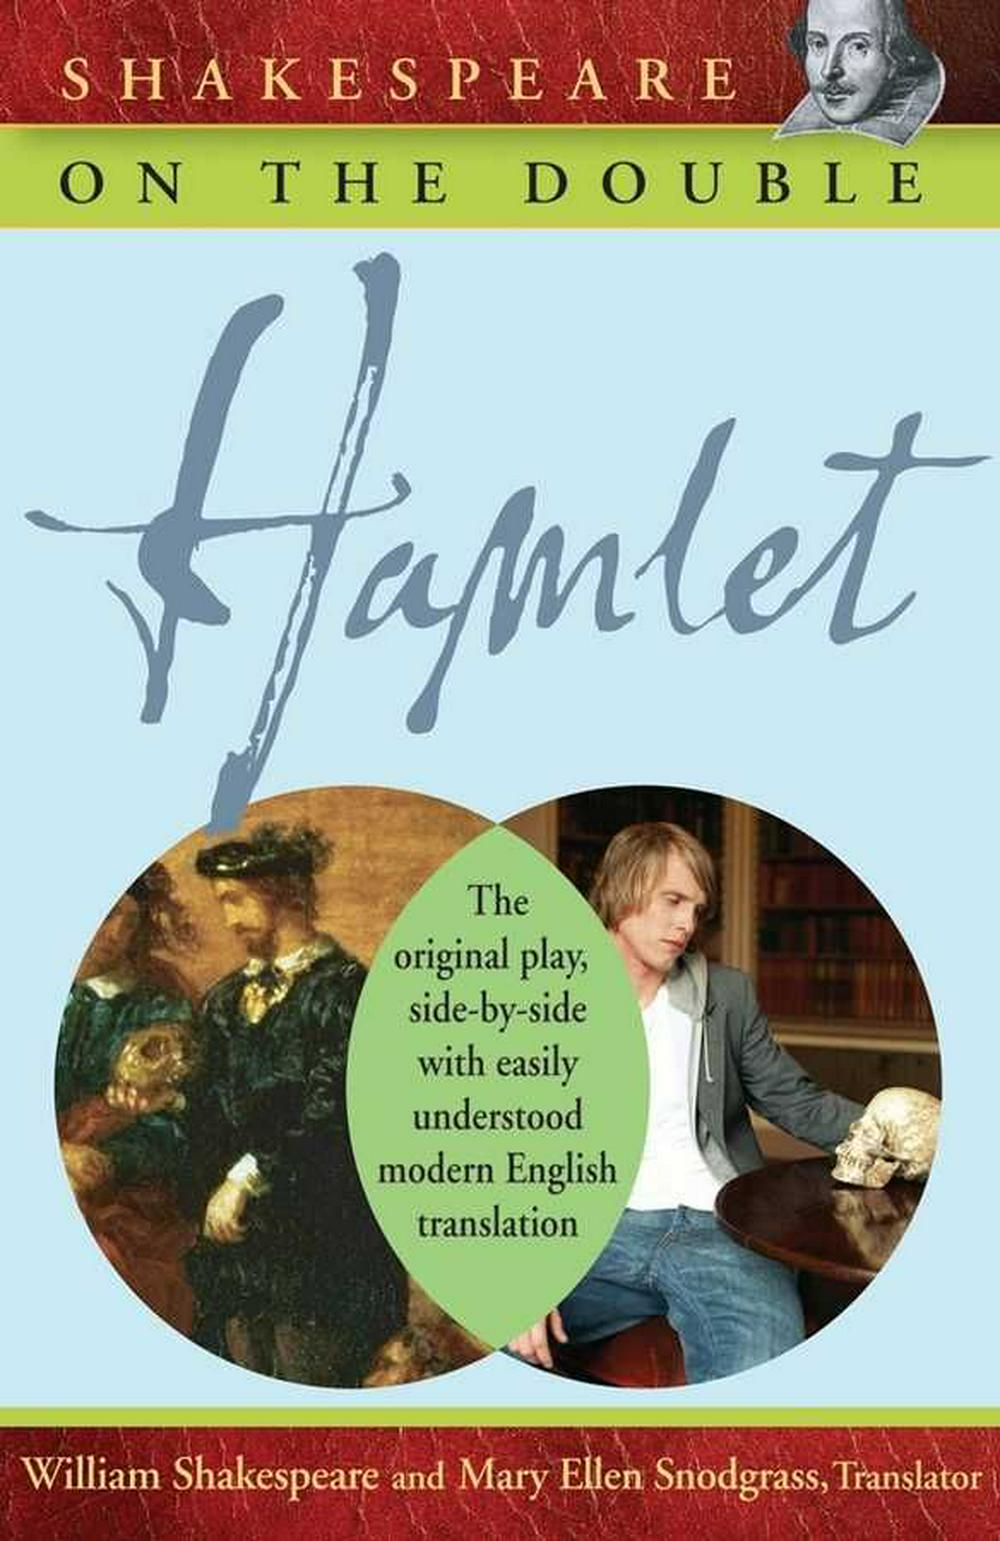 the promise of revenge in hamlet by william shakespeare Hamlet promises that he will sweep to [his] revenge, and the ghost replies, duller shouldst thou be than the fat weed / that roots itself in ease on lethe wharf, / wouldst not stir in this (1532-34.